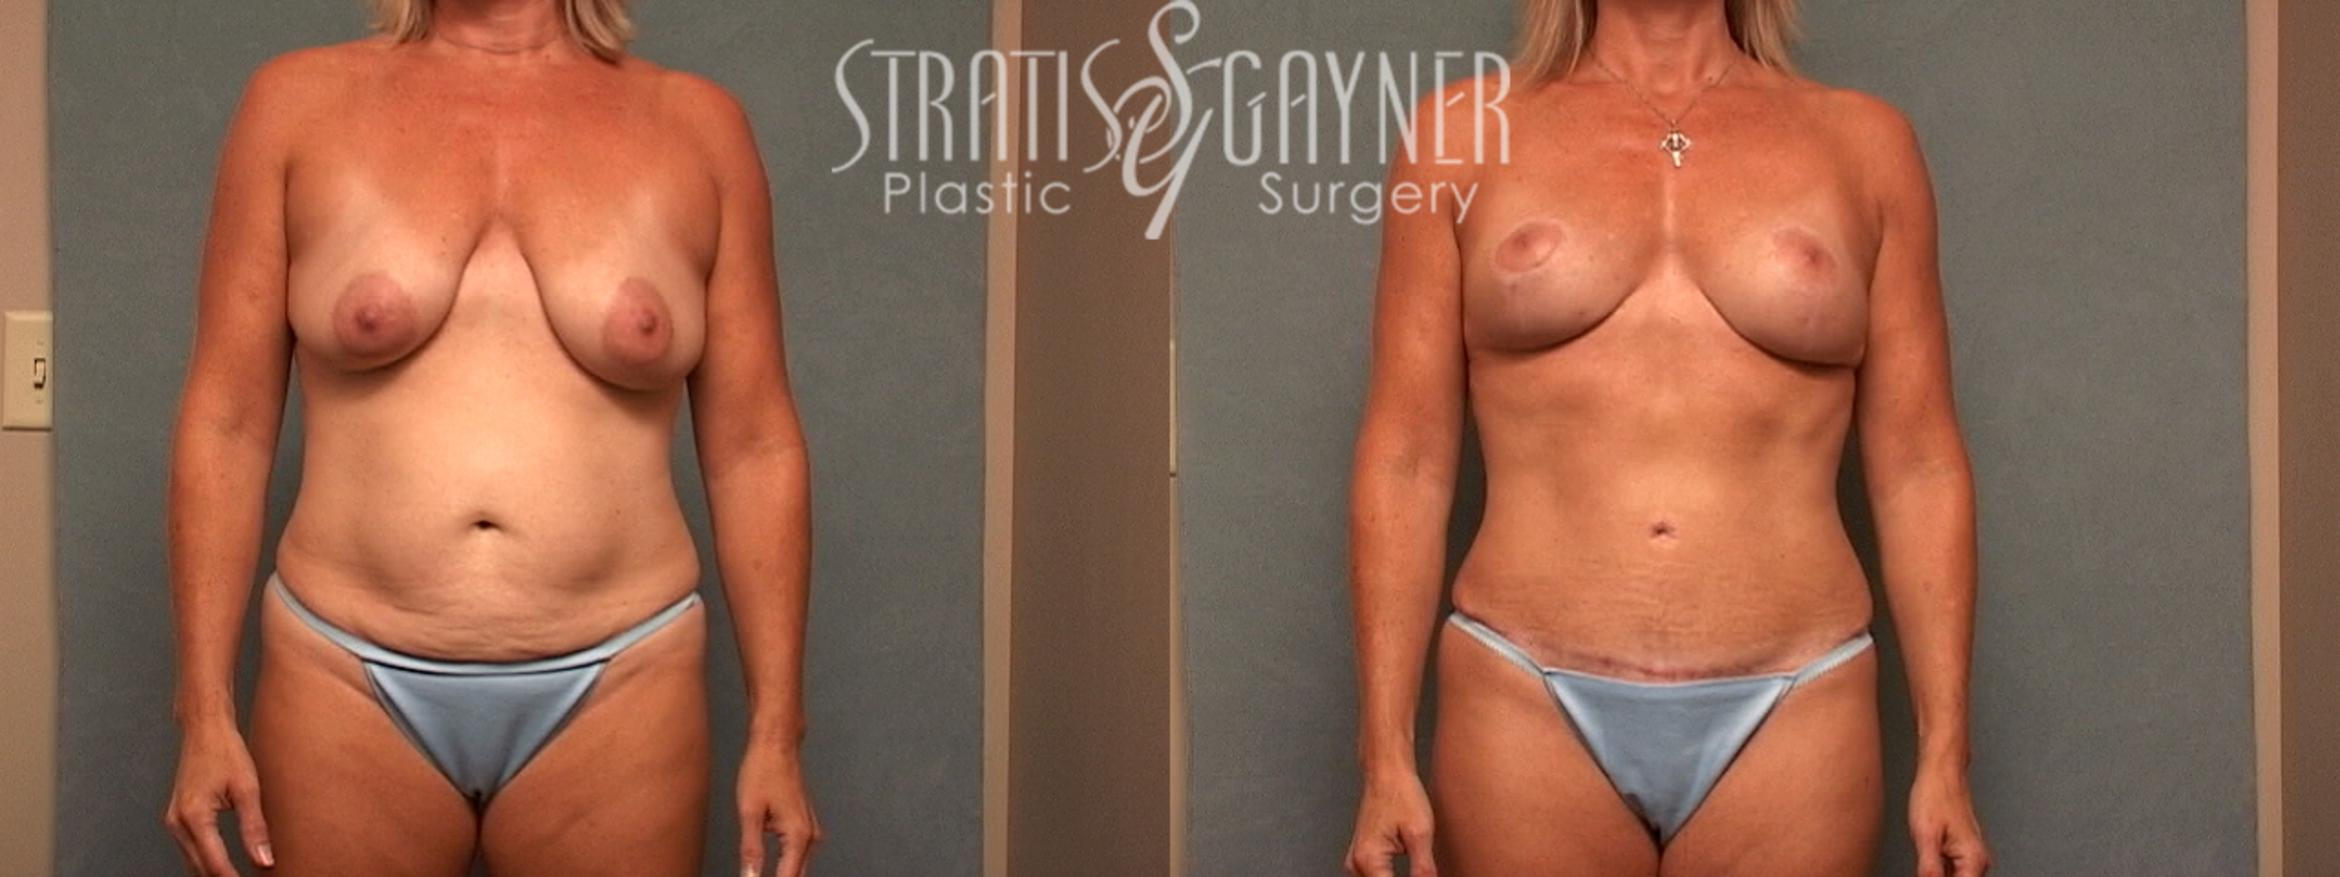 Mommy Makeover Case 49 Before & After View #1 | Harrisburg, PA | Stratis Gayner Plastic Surgery